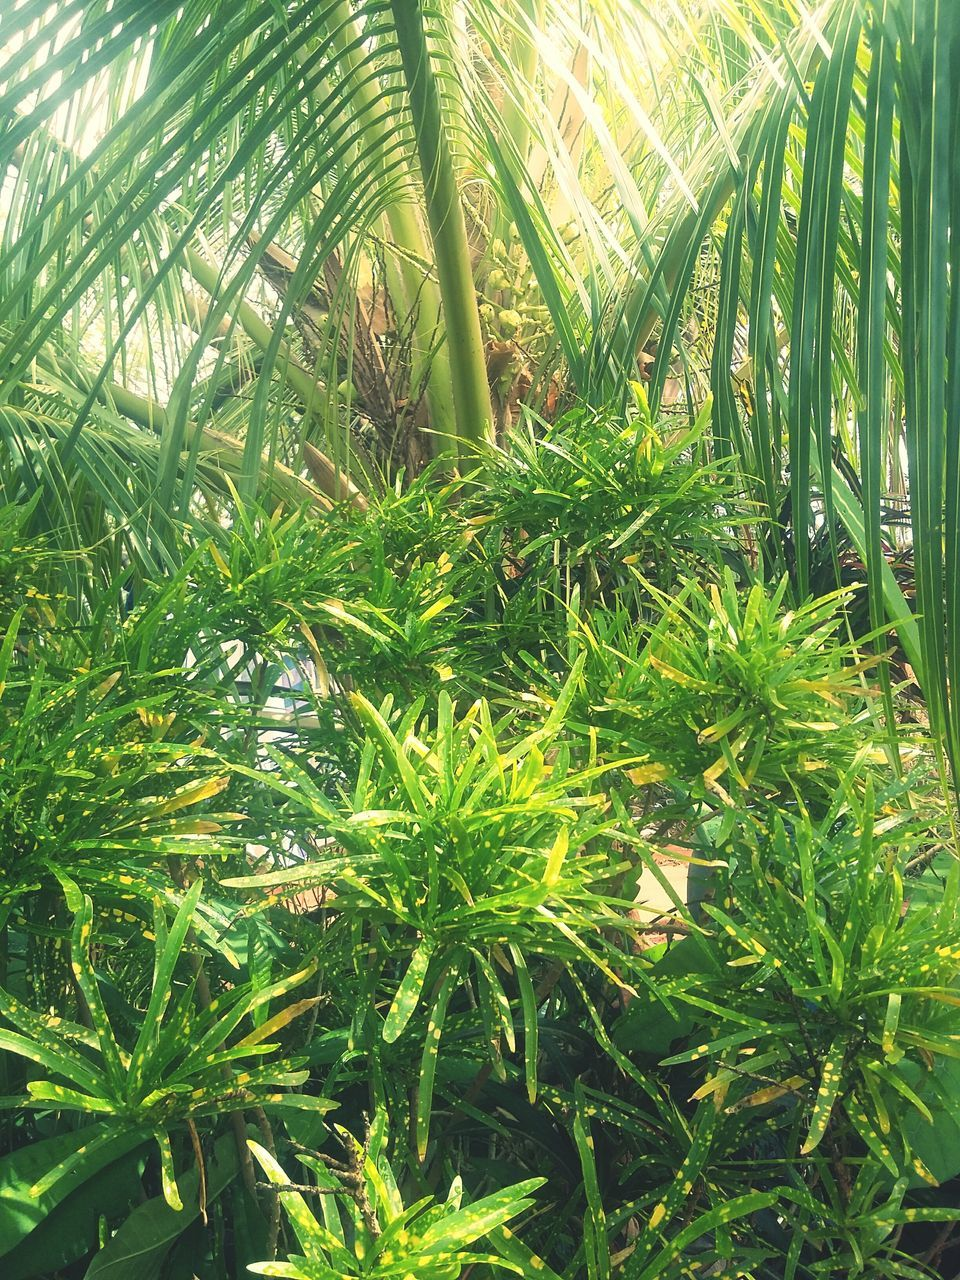 growth, green color, nature, leaf, palm tree, beauty in nature, plant, day, outdoors, frond, sunlight, no people, tranquility, tree, grass, close-up, bamboo - plant, freshness